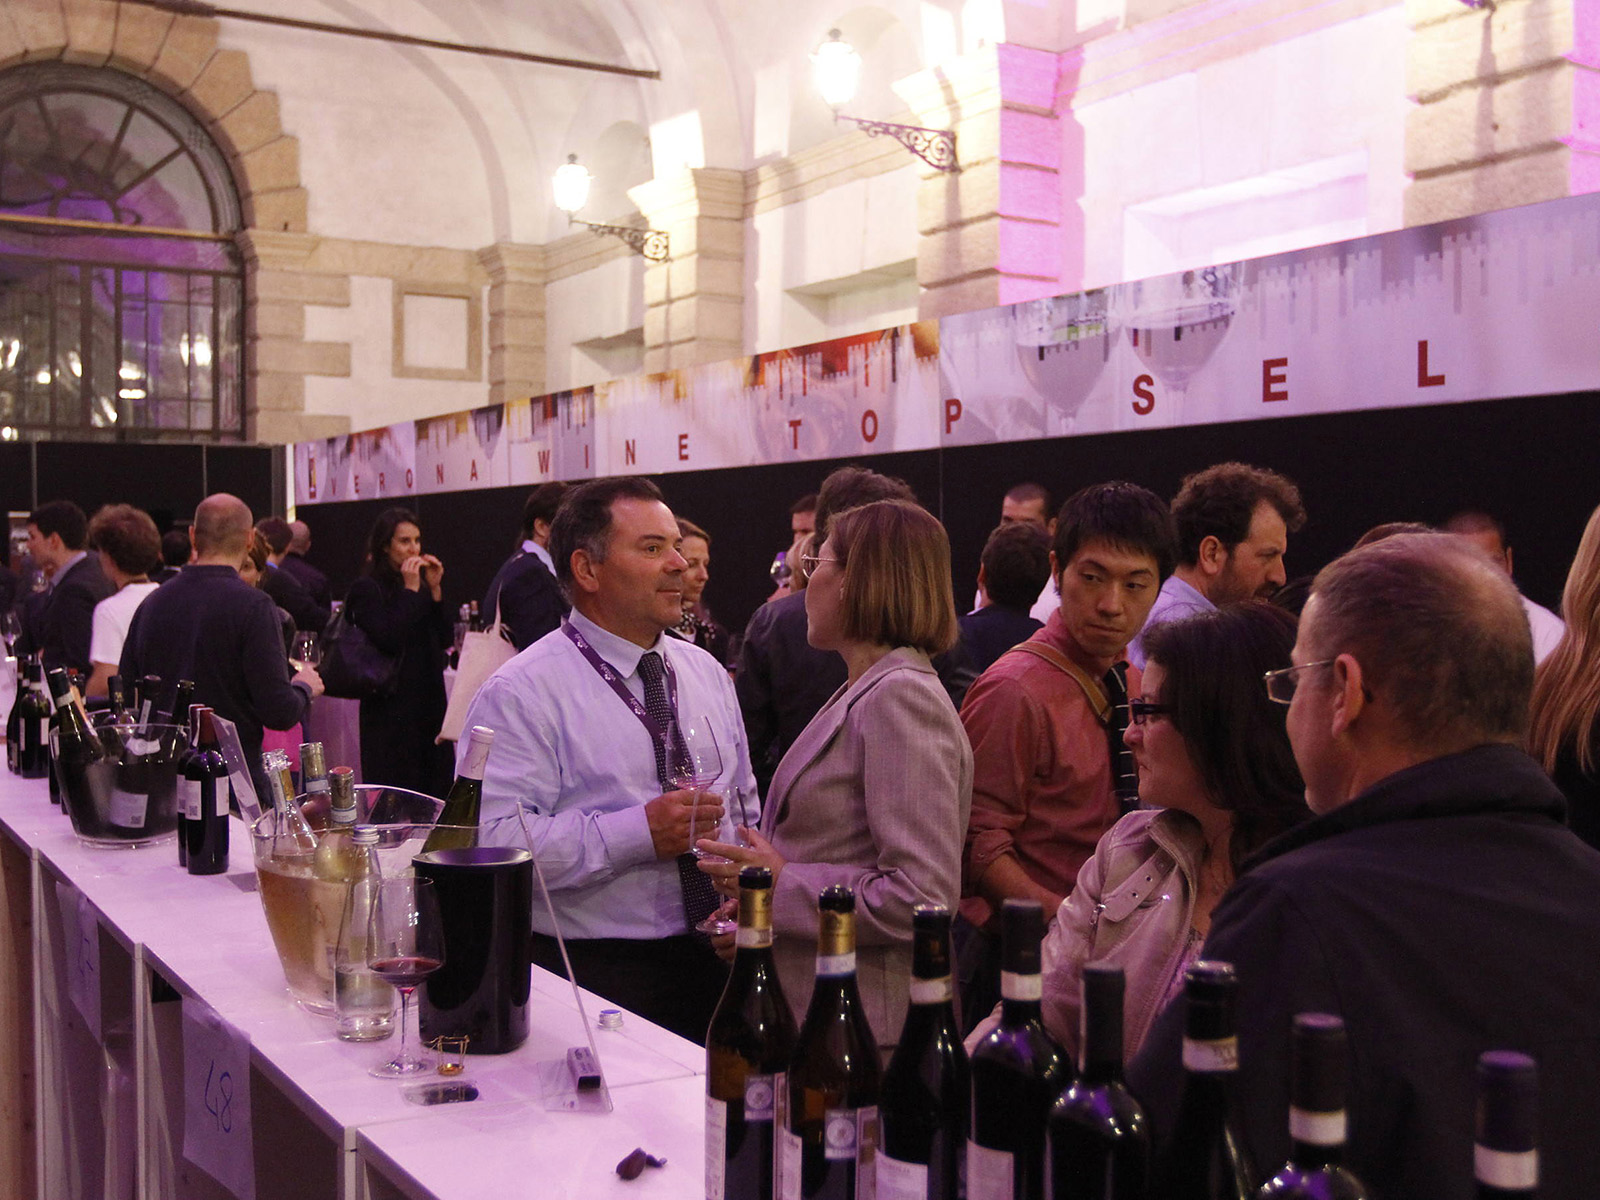 Degustazione Vinitaly and the city viola